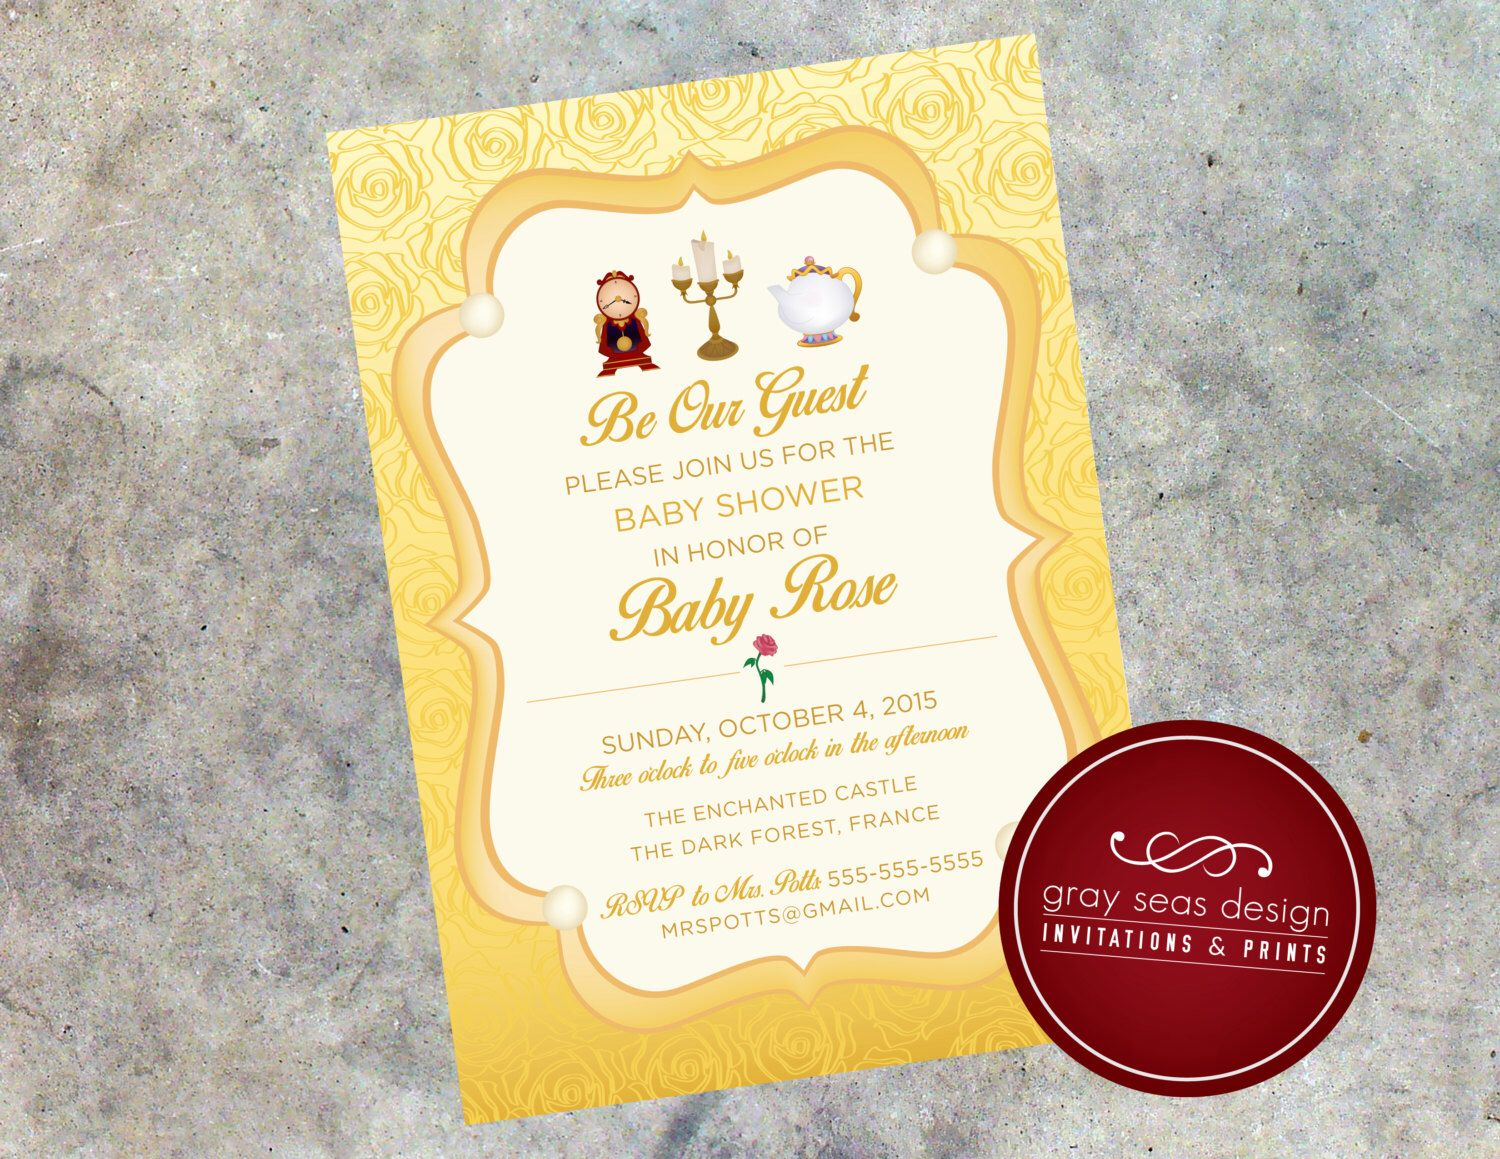 Be Our Guest   Beauty And The Beastu0027s Belle Inspired 5x7 Baby Shower  Invitation By GraySeasDesign